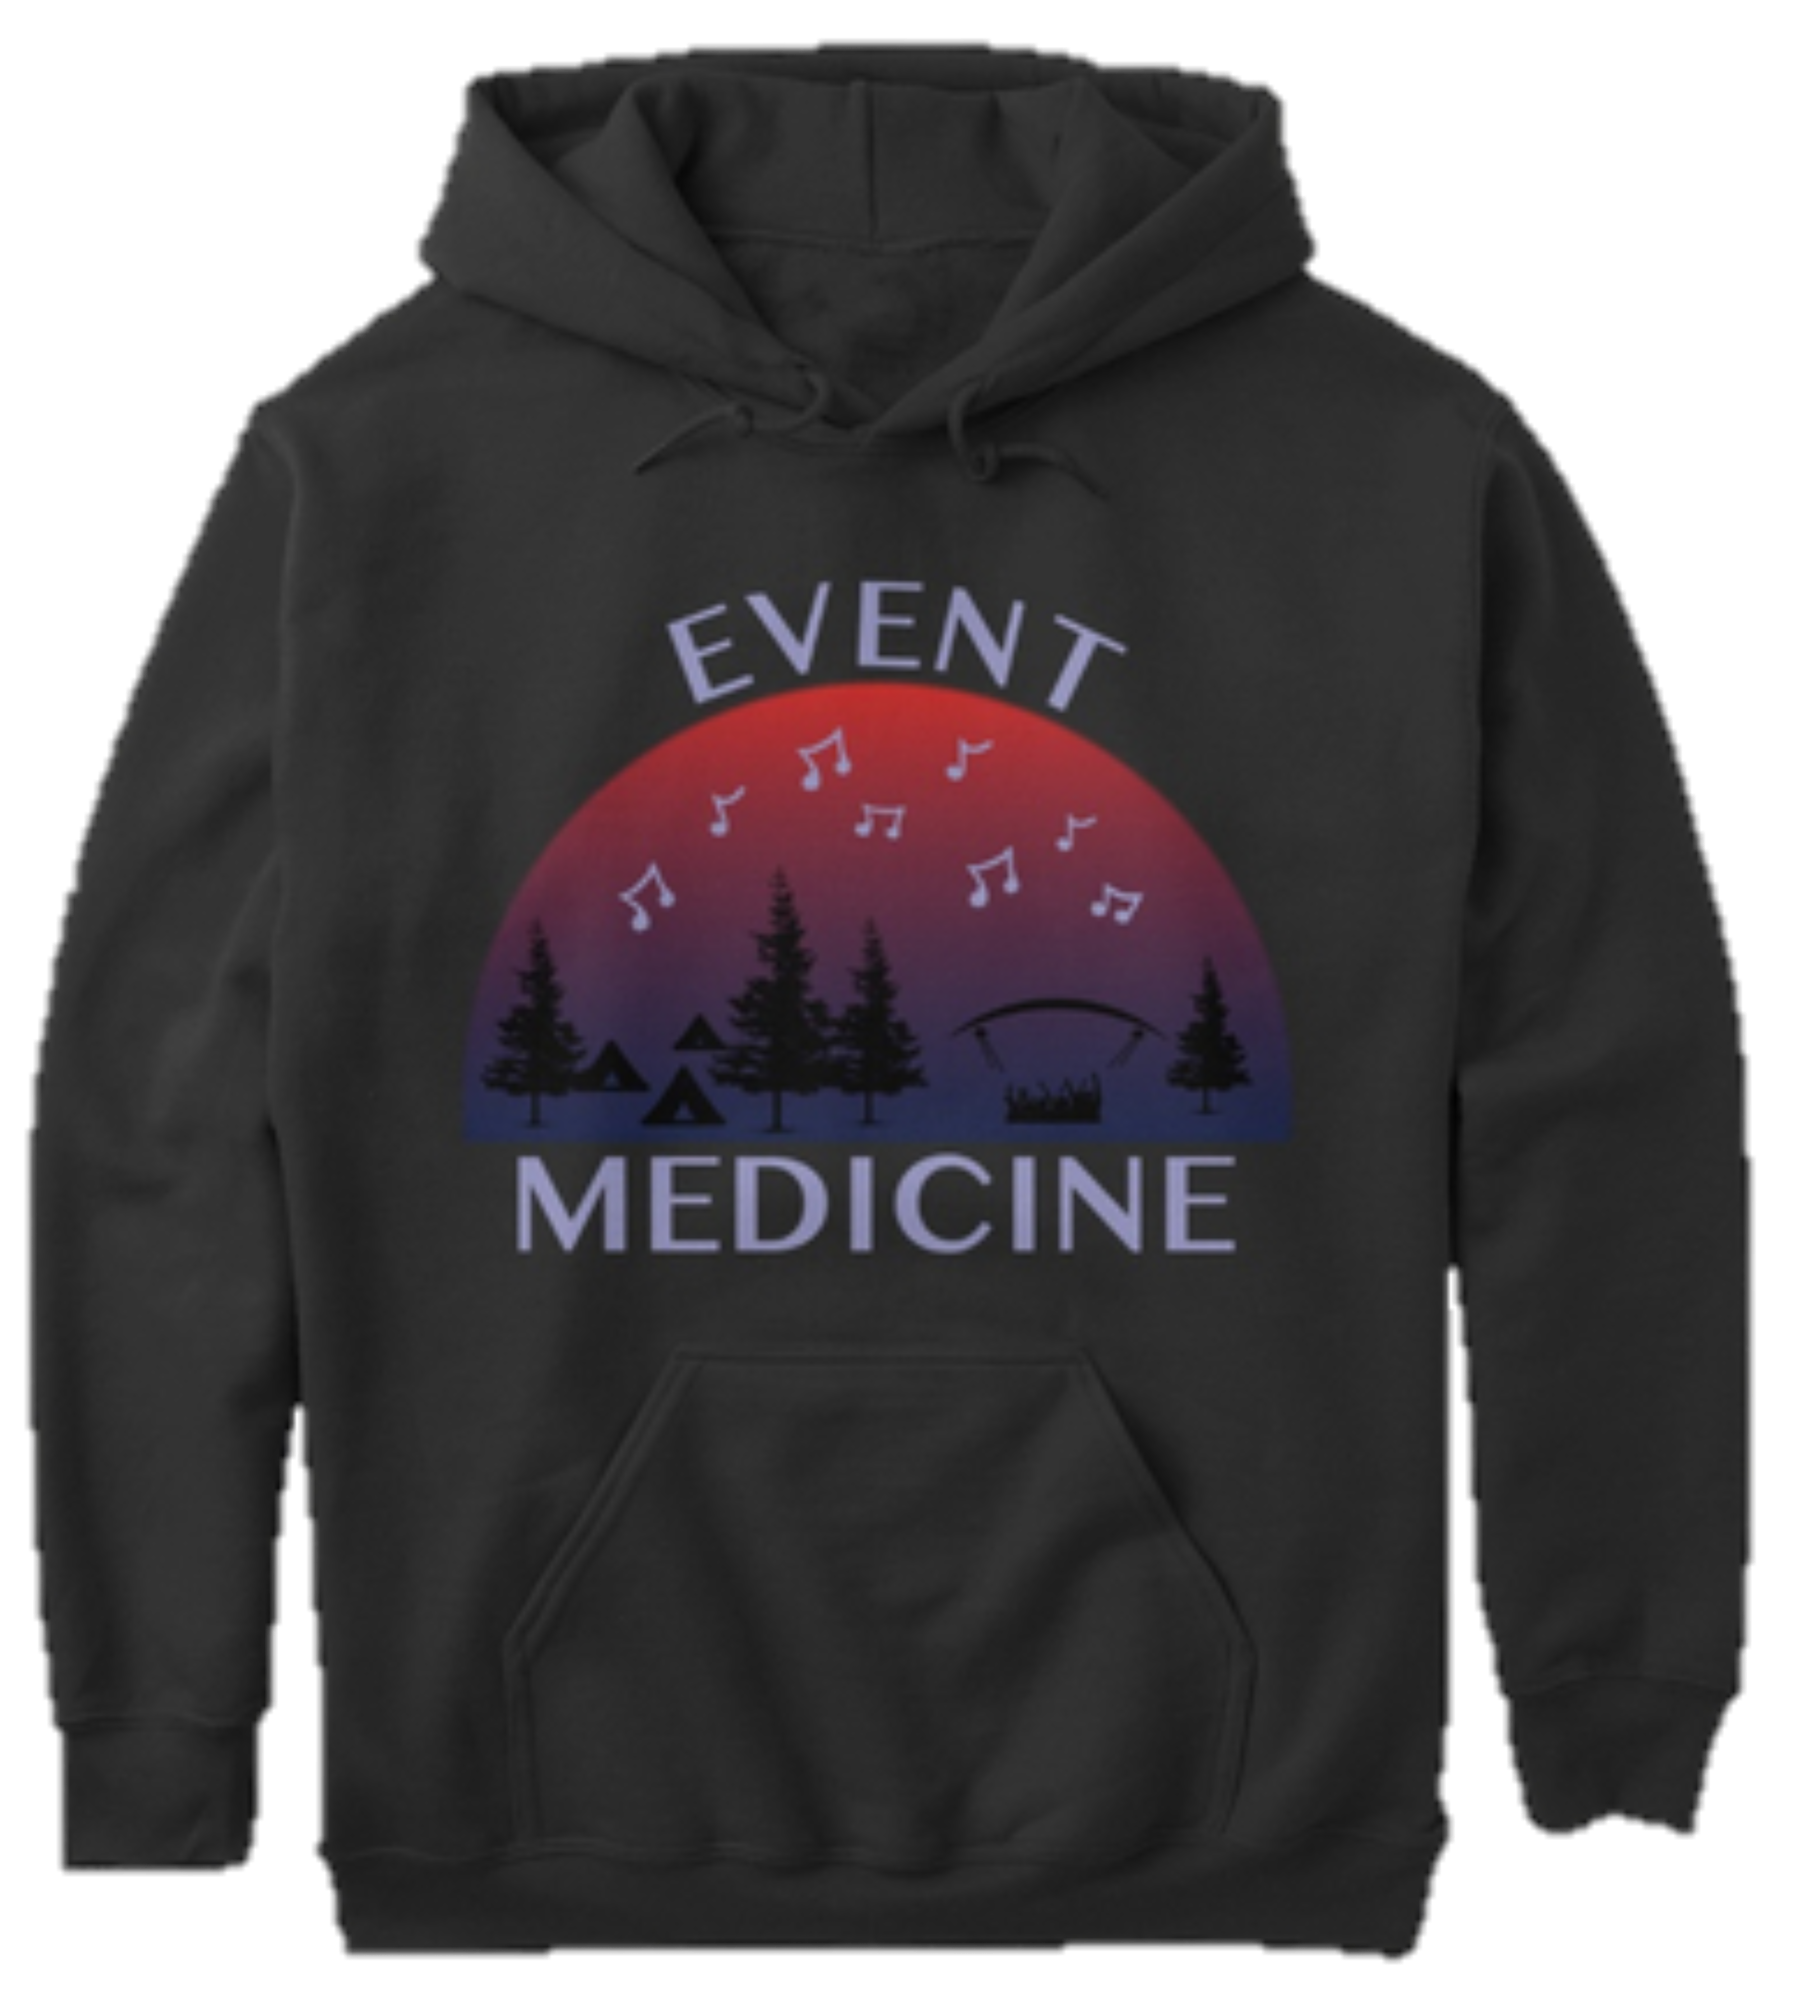 Hoodie Designs for Event Crew